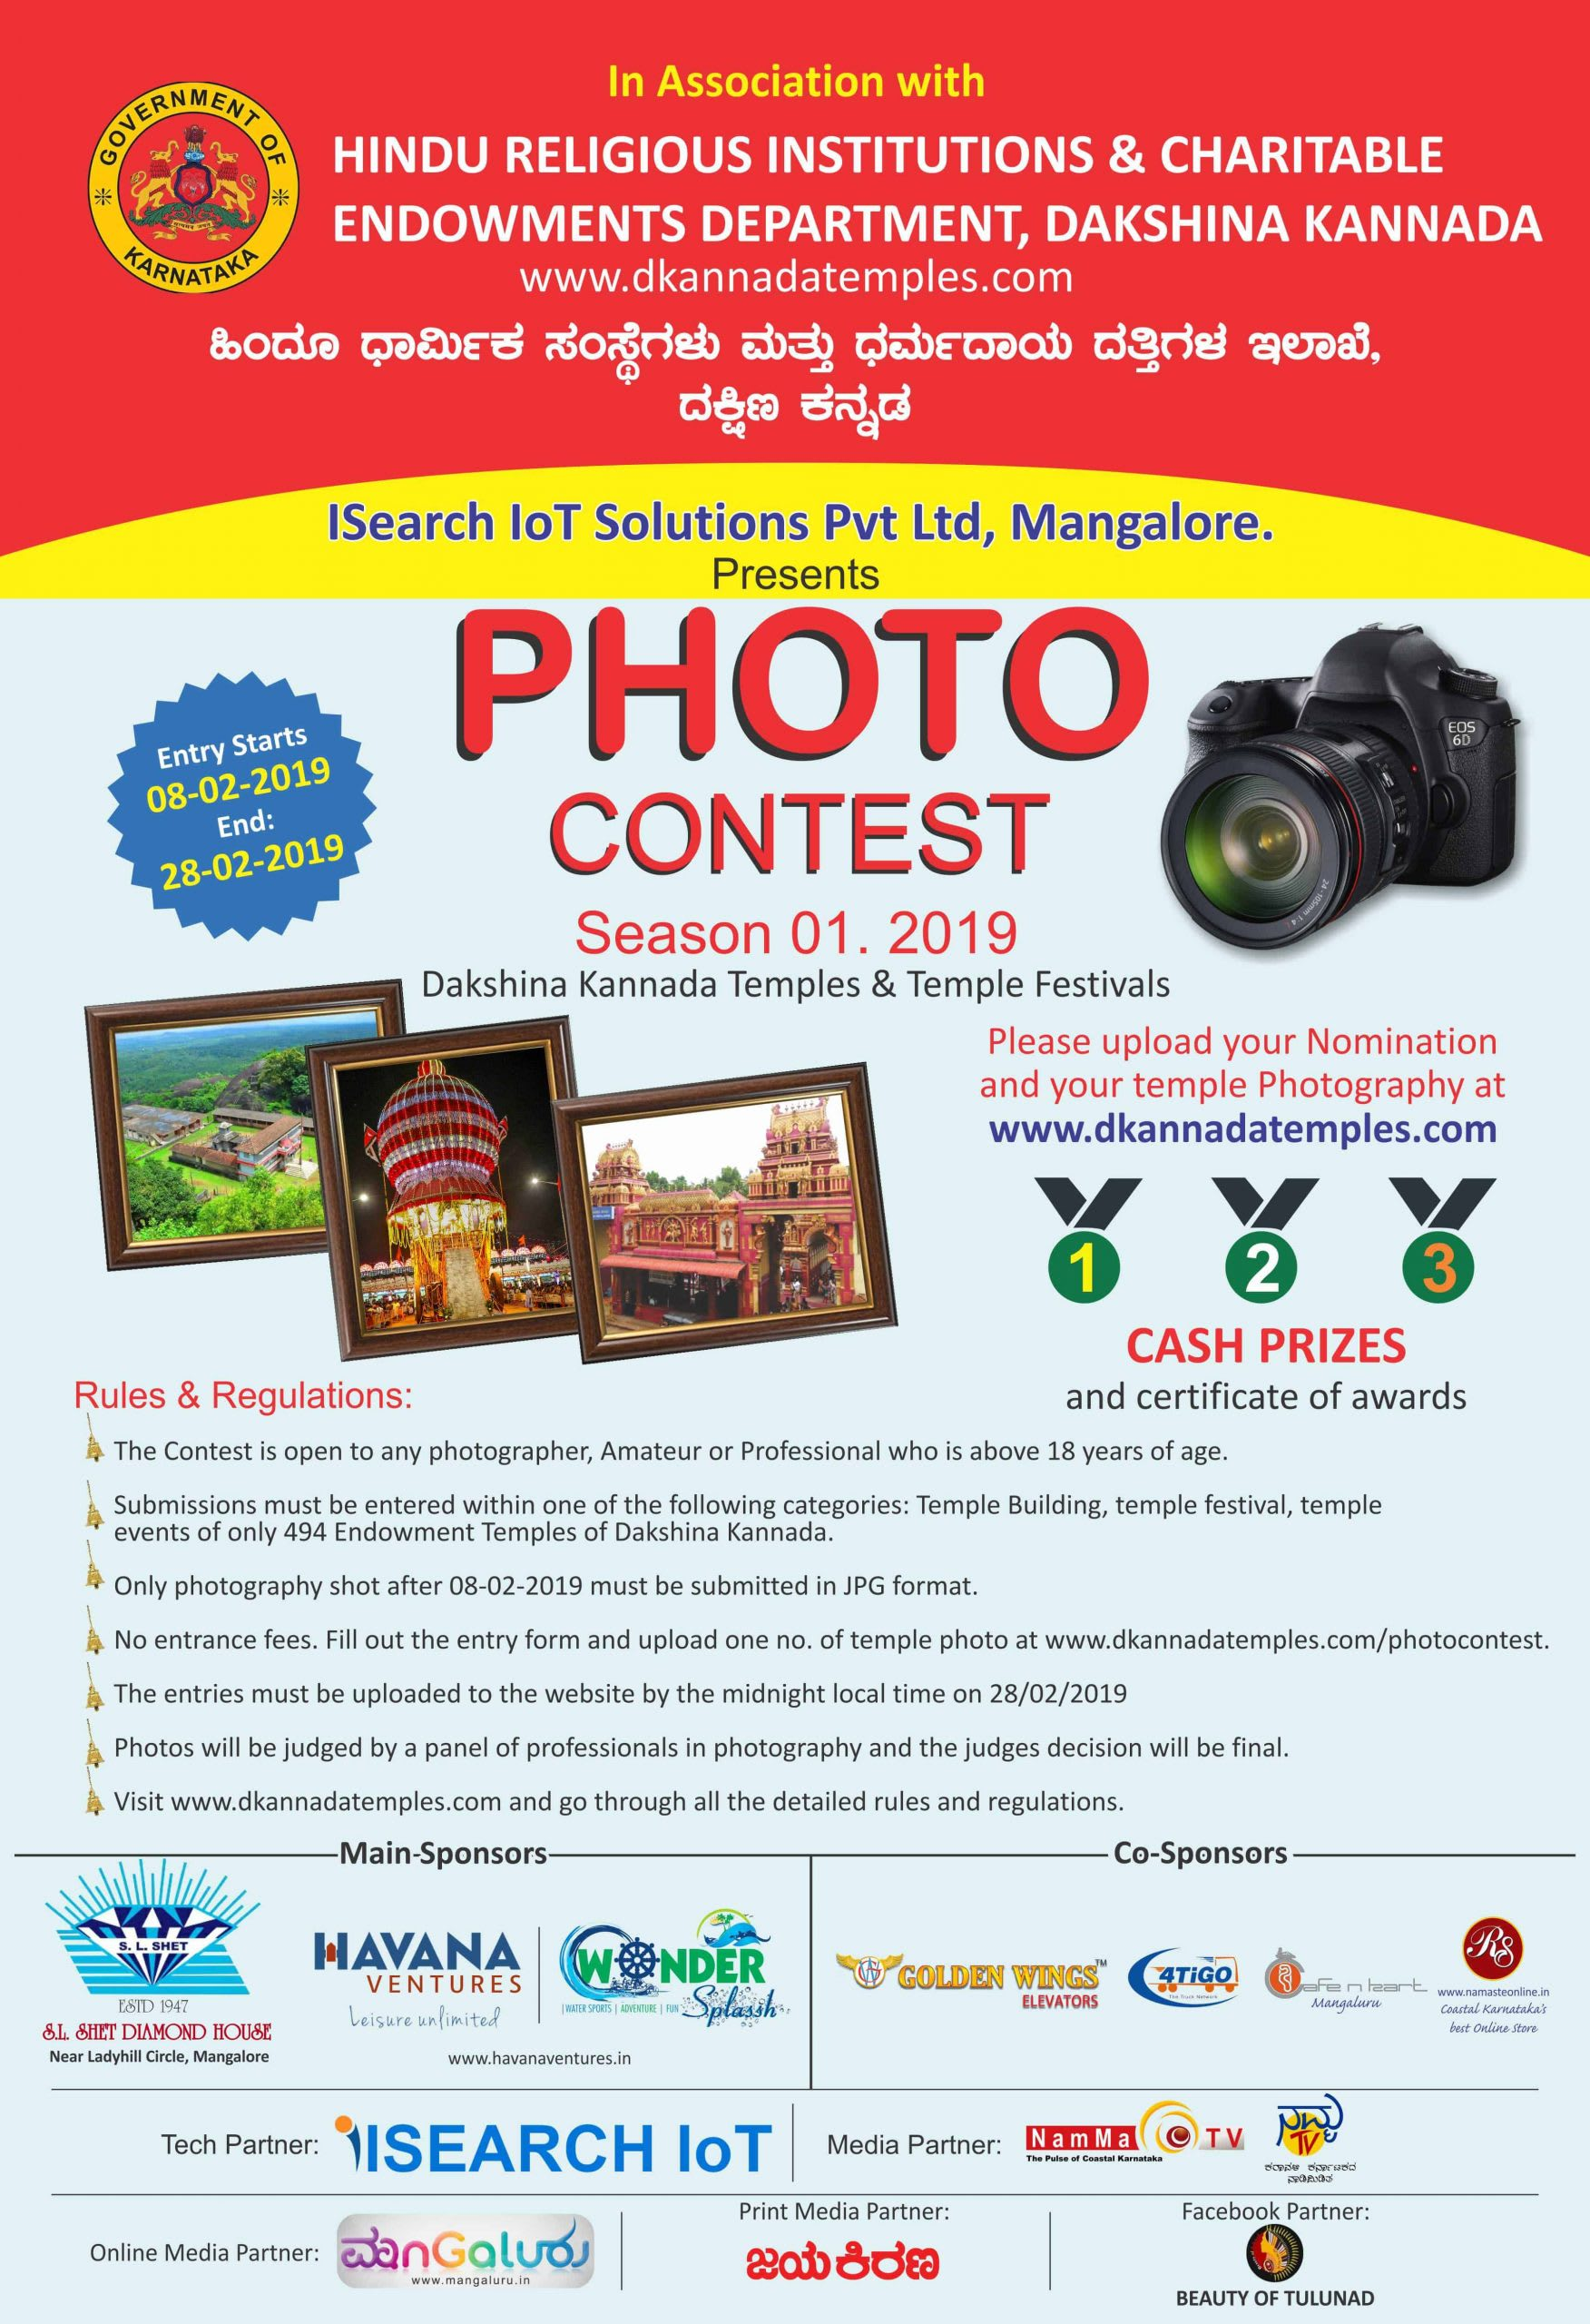 Hindu-Religious-Instituion-Charitable-endowment-Department-Dakshina-Kannada-photo-contest-2019-isearch-iot